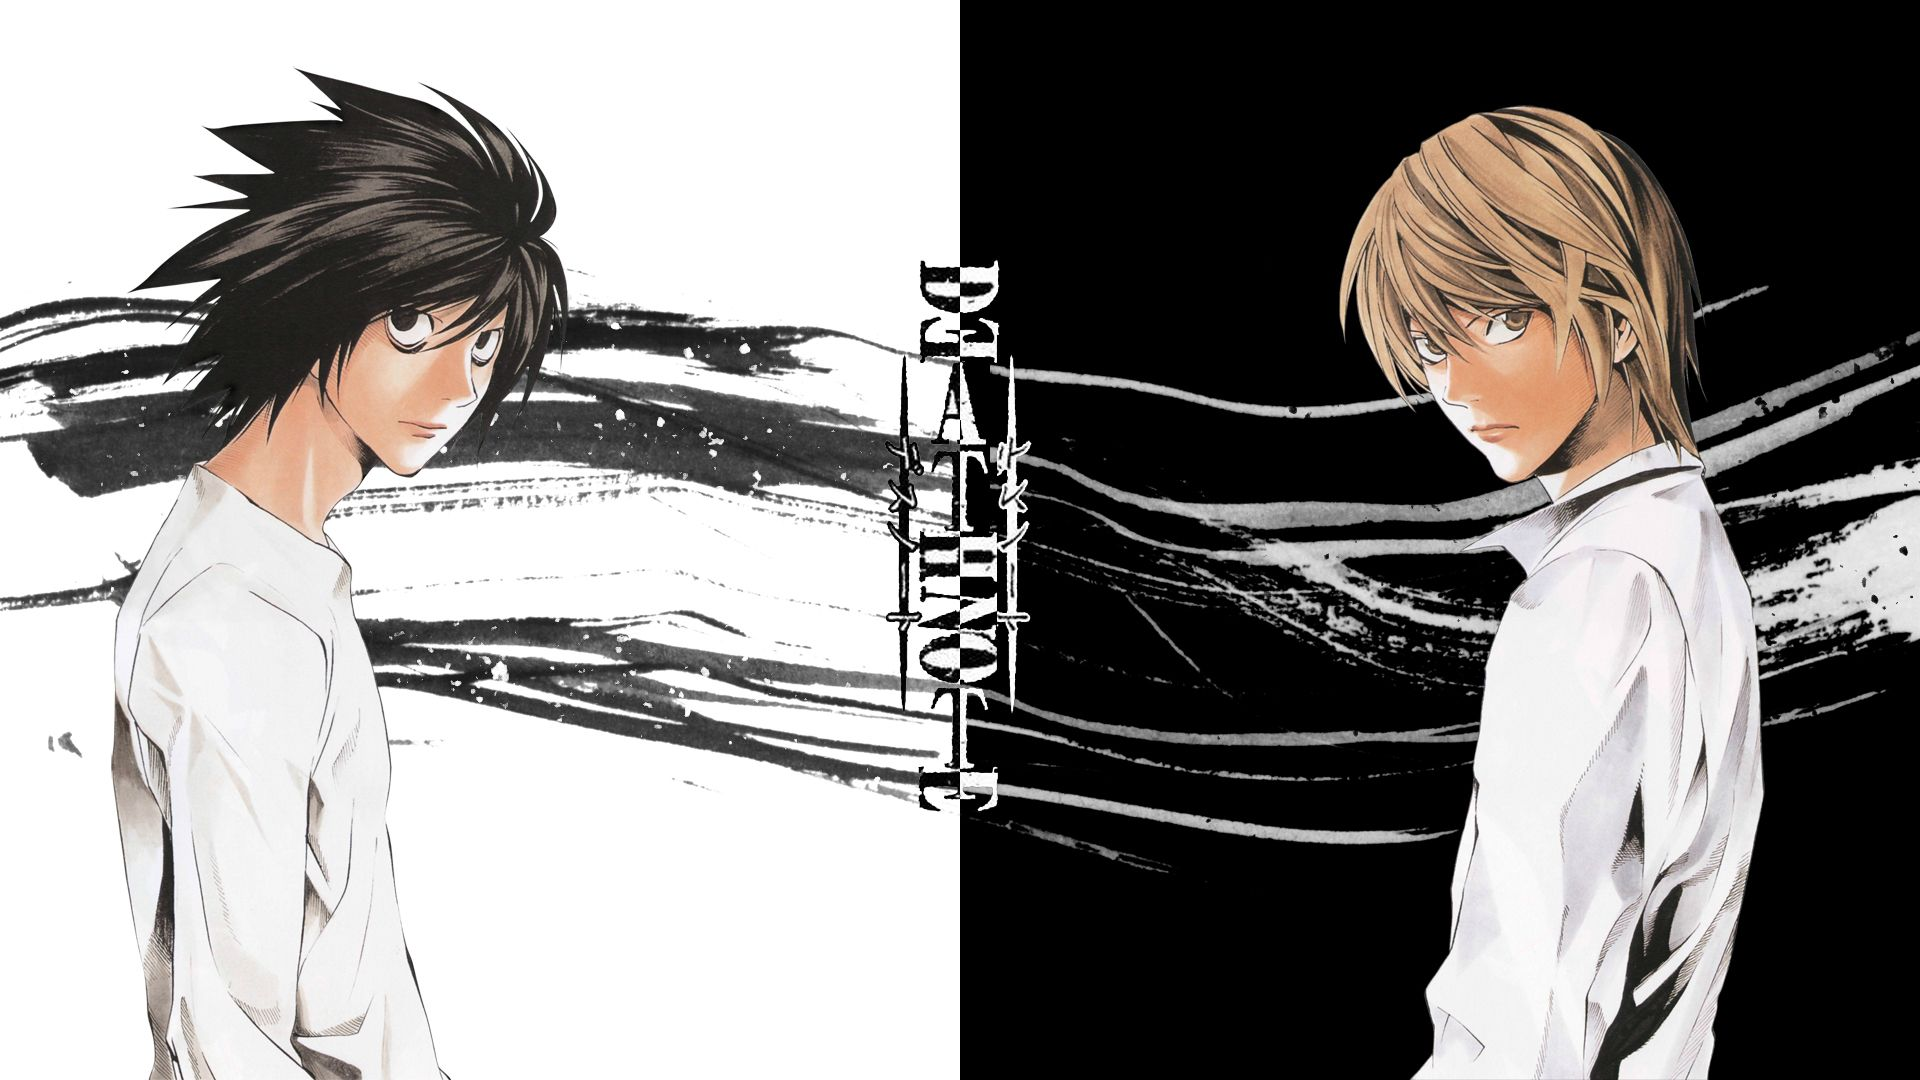 death note wallpaper,cartoon,anime,black hair,monochrome,black and white